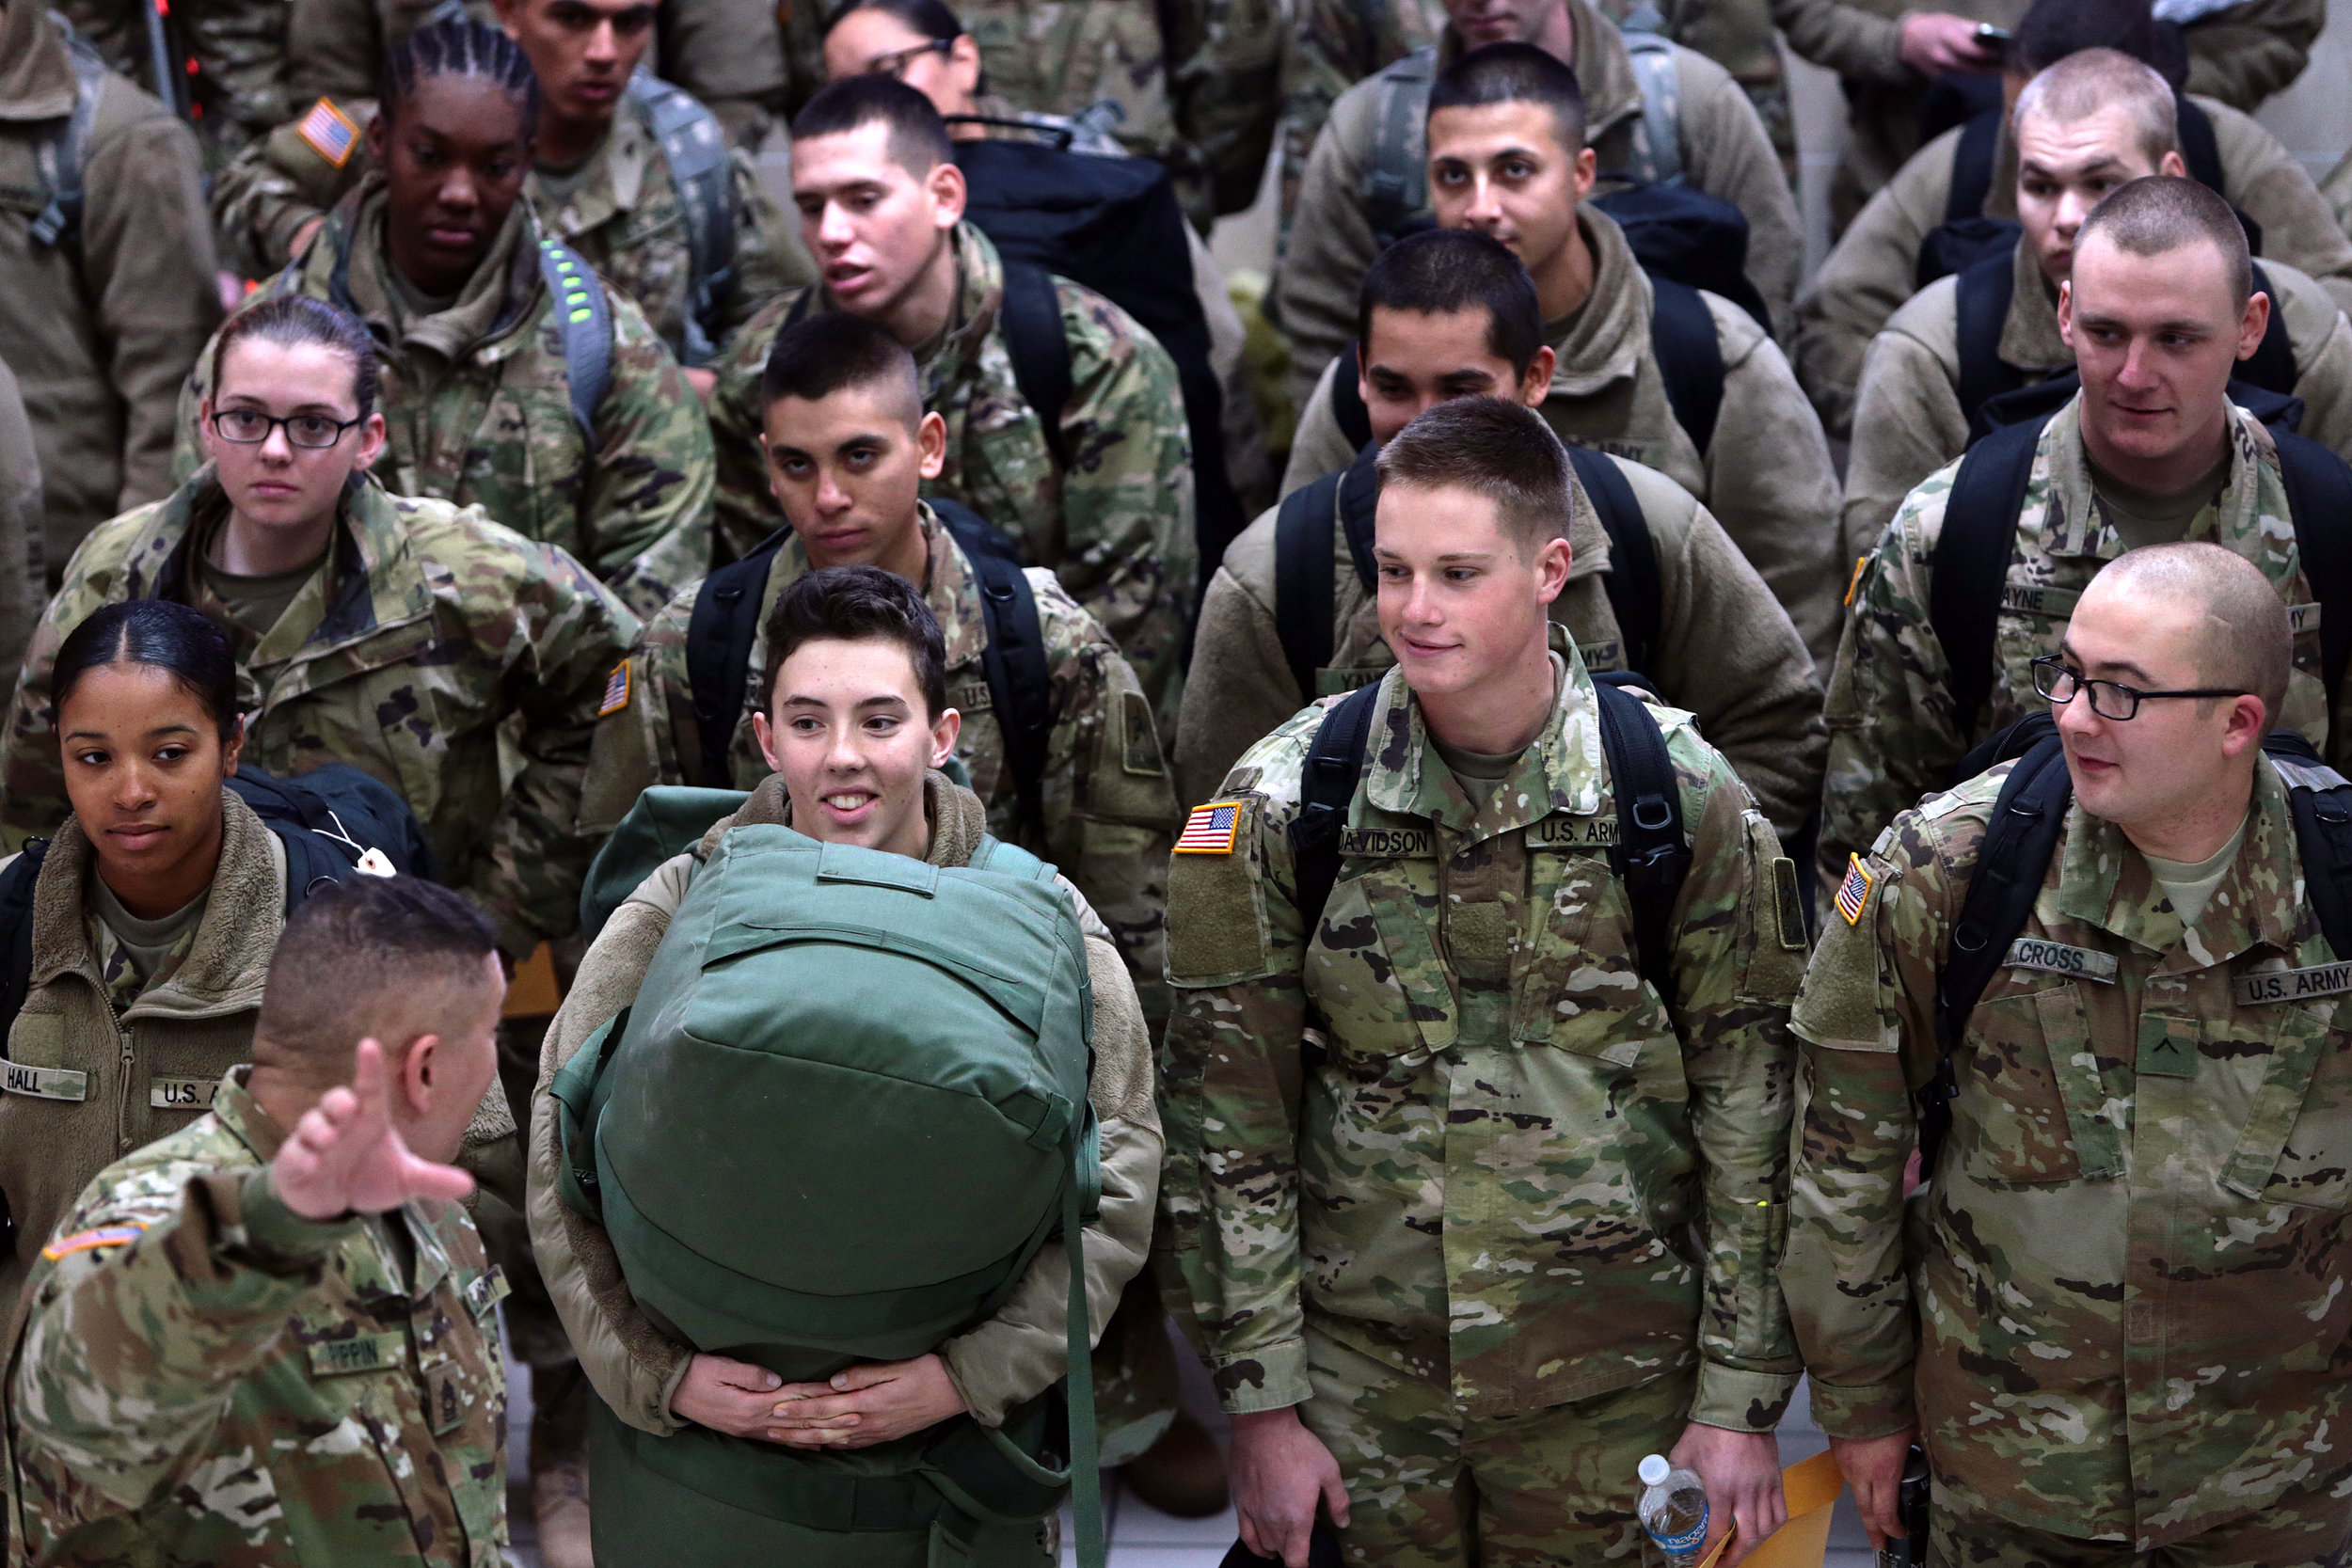 Soldiers from Fort Leonard Wood line up in Terminal 2 before going through security at Lambert–St. Louis International Airport on Wednesday, Dec. 21, 2016. Between 2,000 and 3,000 soldiers from Fort Leonard Wood are expected to pass through Lambert today as they make their way home for the holidays.